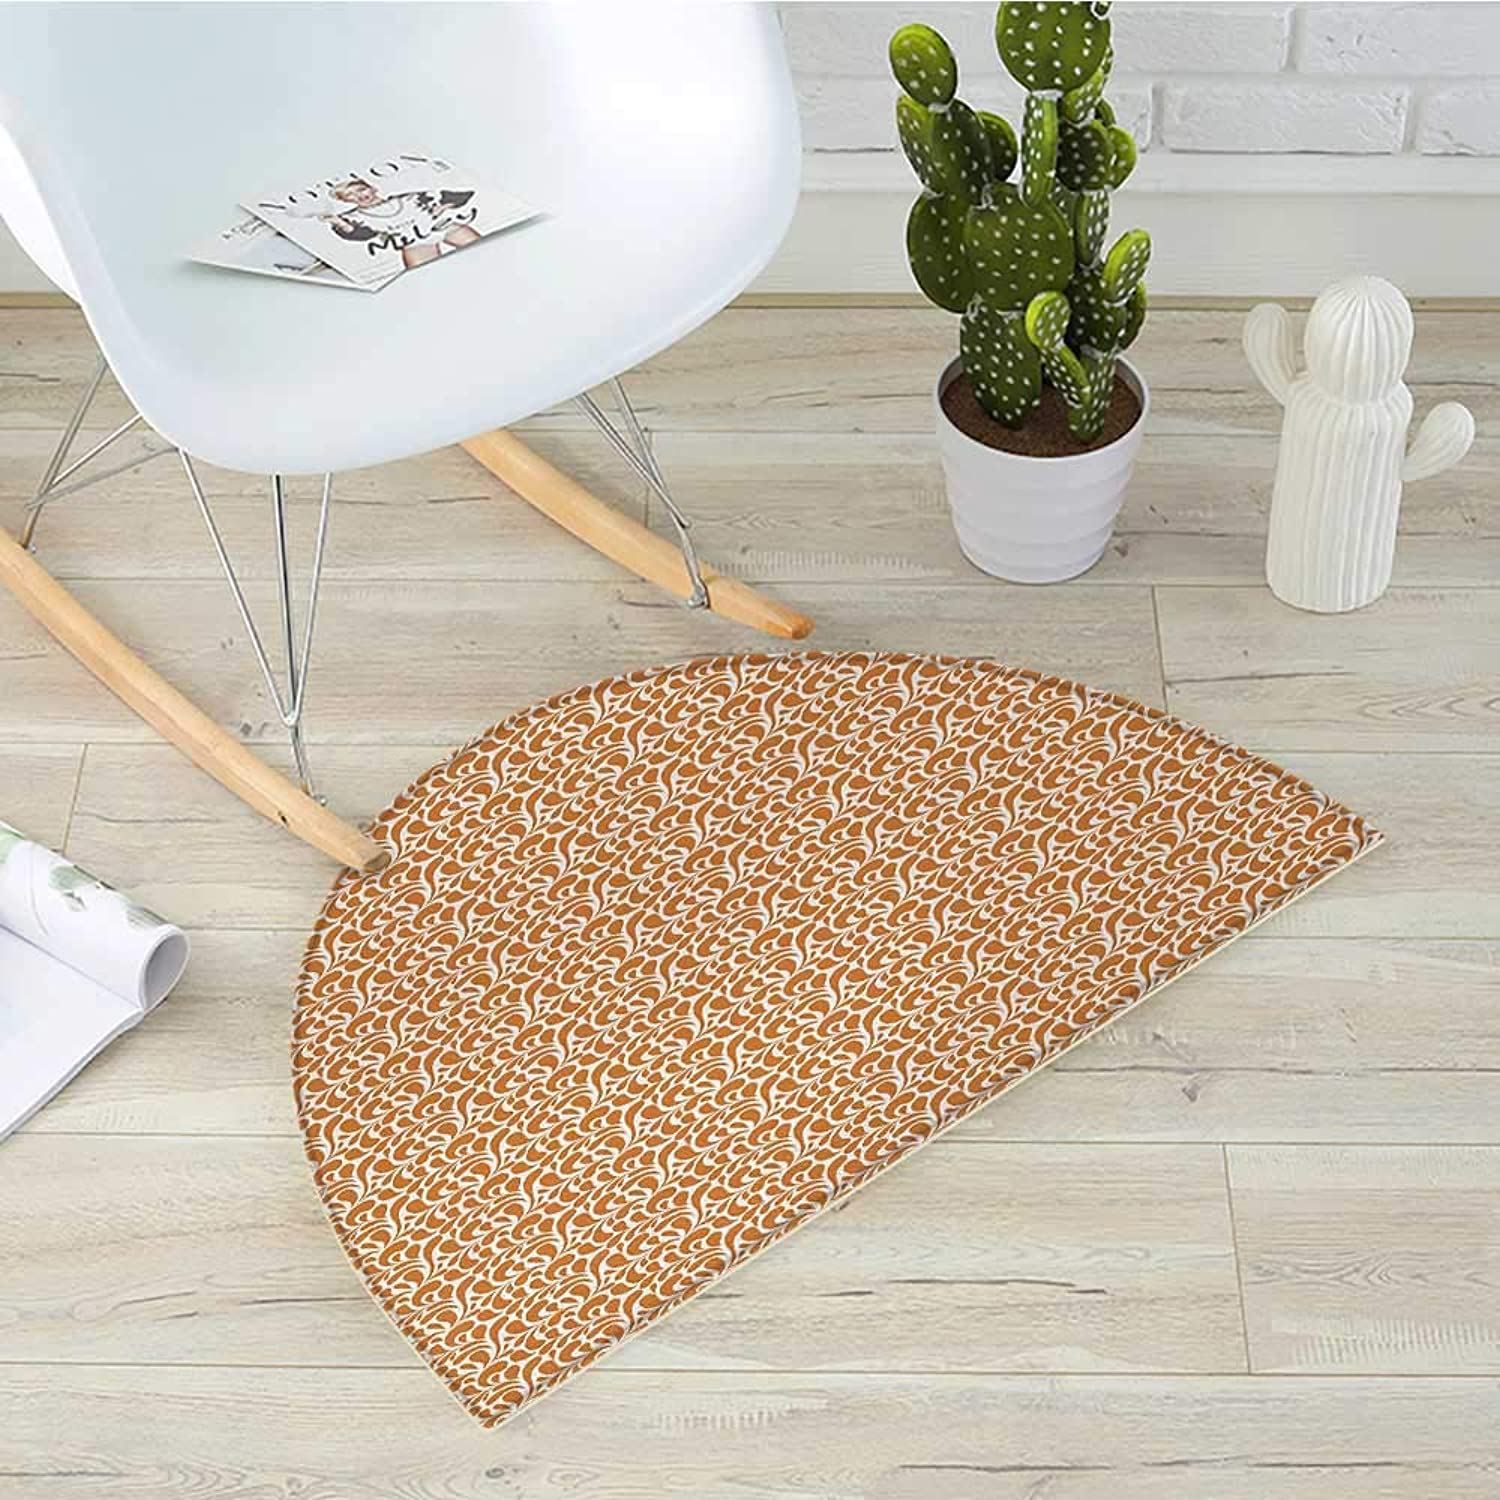 Ginger and White Semicircle Doormat Abstract Paisley Motifs Ethnic Middle East Folklore Inspirations Halfmoon doormats H 39.3  xD 59  Ginger and White